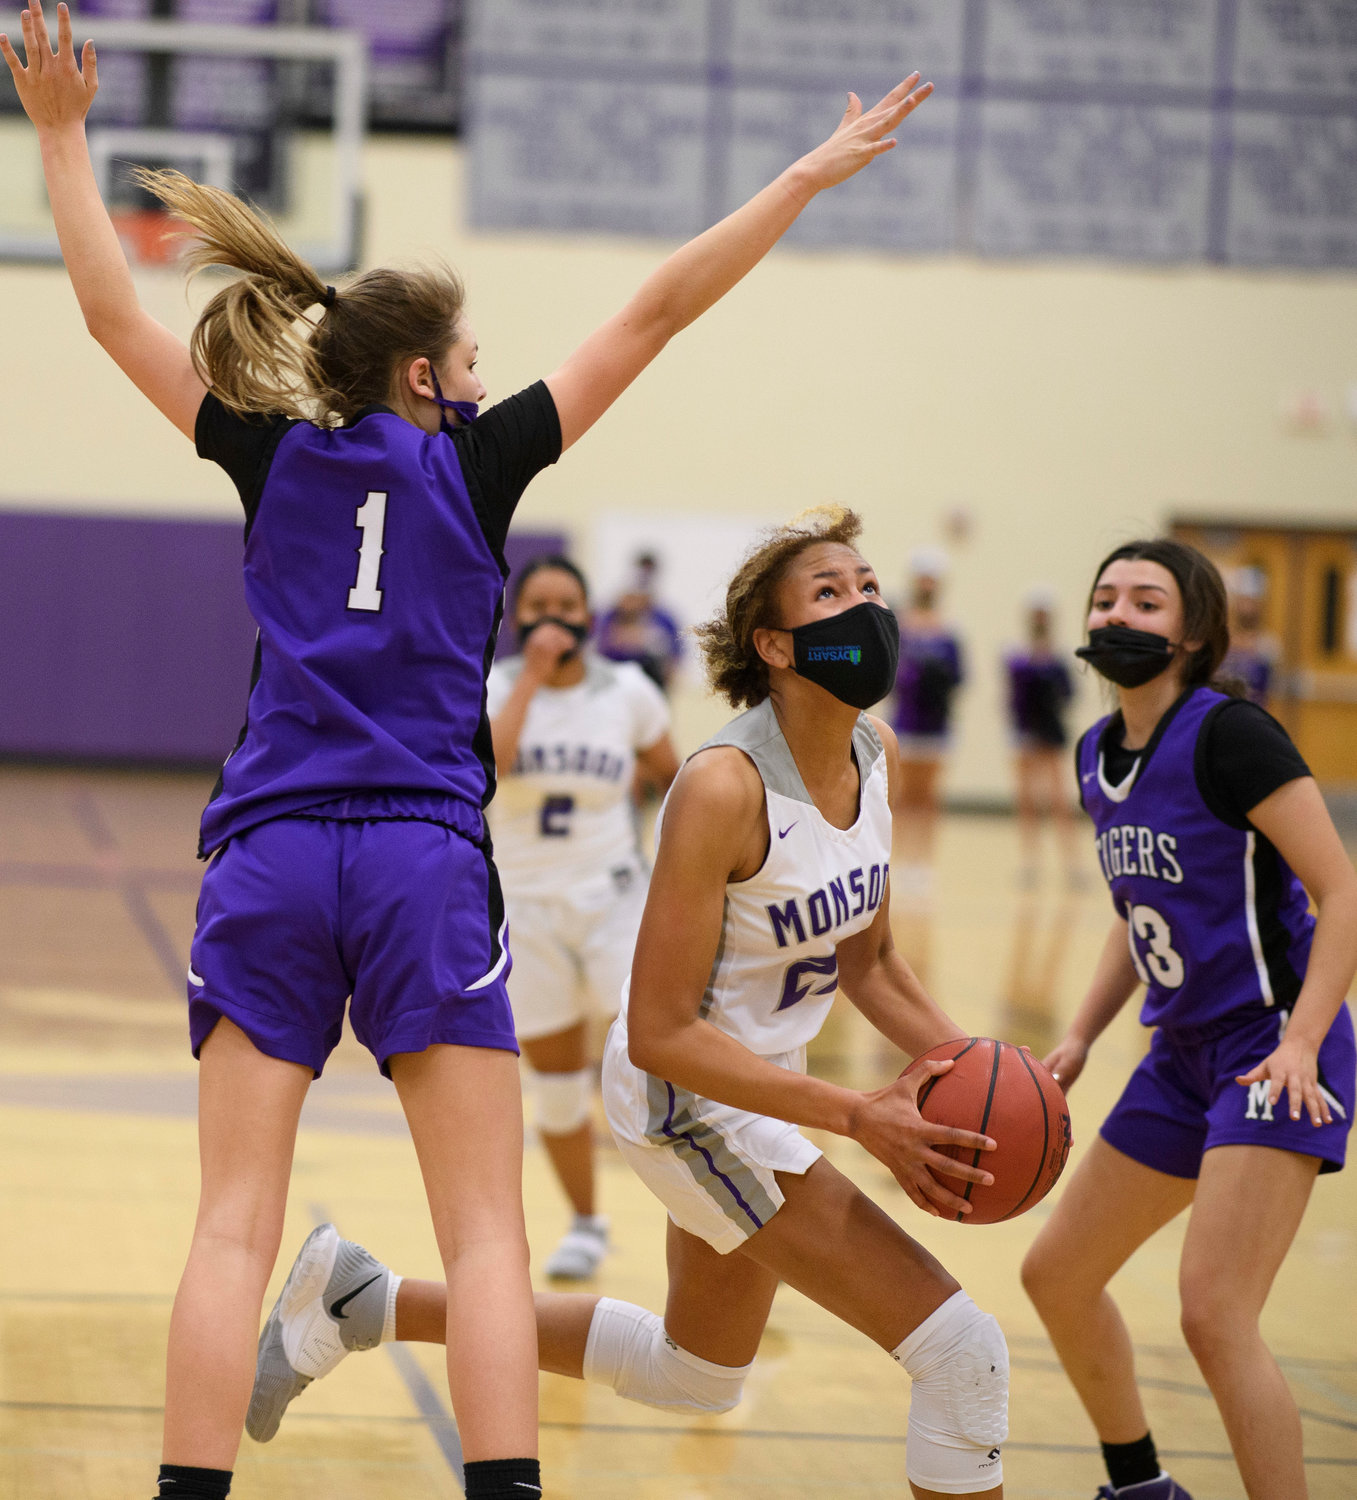 Valley Vista junior forward Mikela Cooper ducks under the defense of Millennium freshman forward Elli Guiney (#1) while sophomore guard Mia Amundsen (#13) looks on during their Feb. 17 game at Valley Vista High School in Surprise. Cooper is a first team all West Valley Preps player.